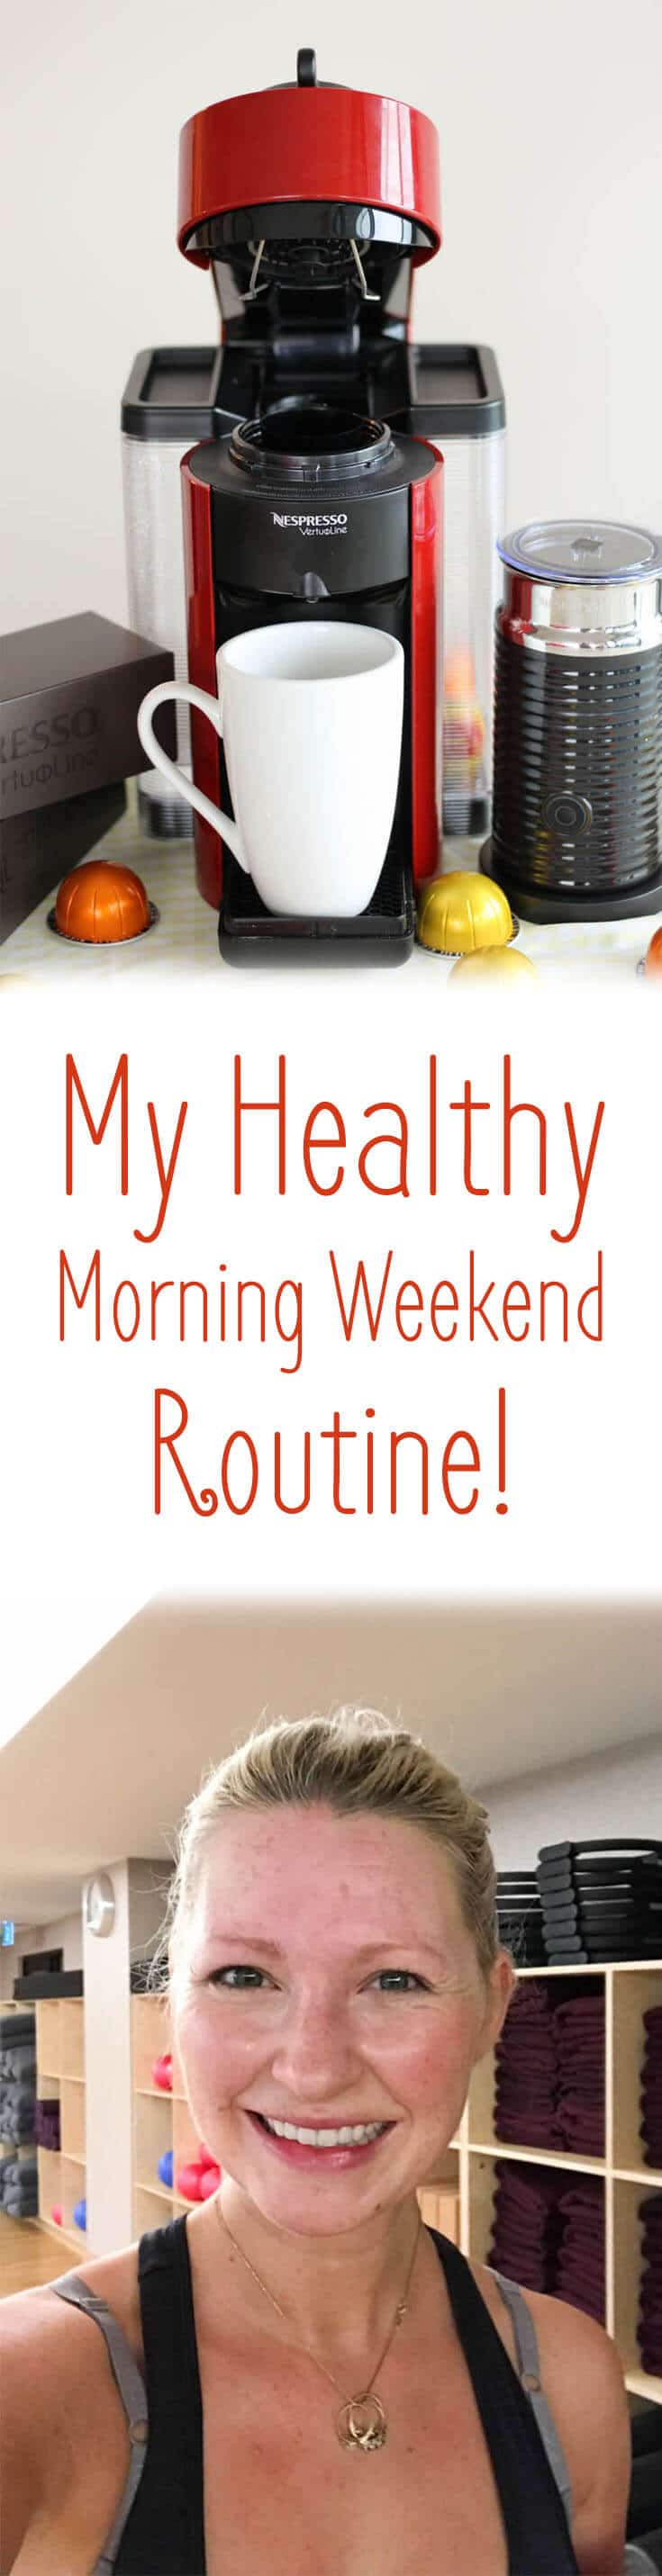 I share my healthy morning weekend routine and my thoughts on the dangers of Cheat Day!